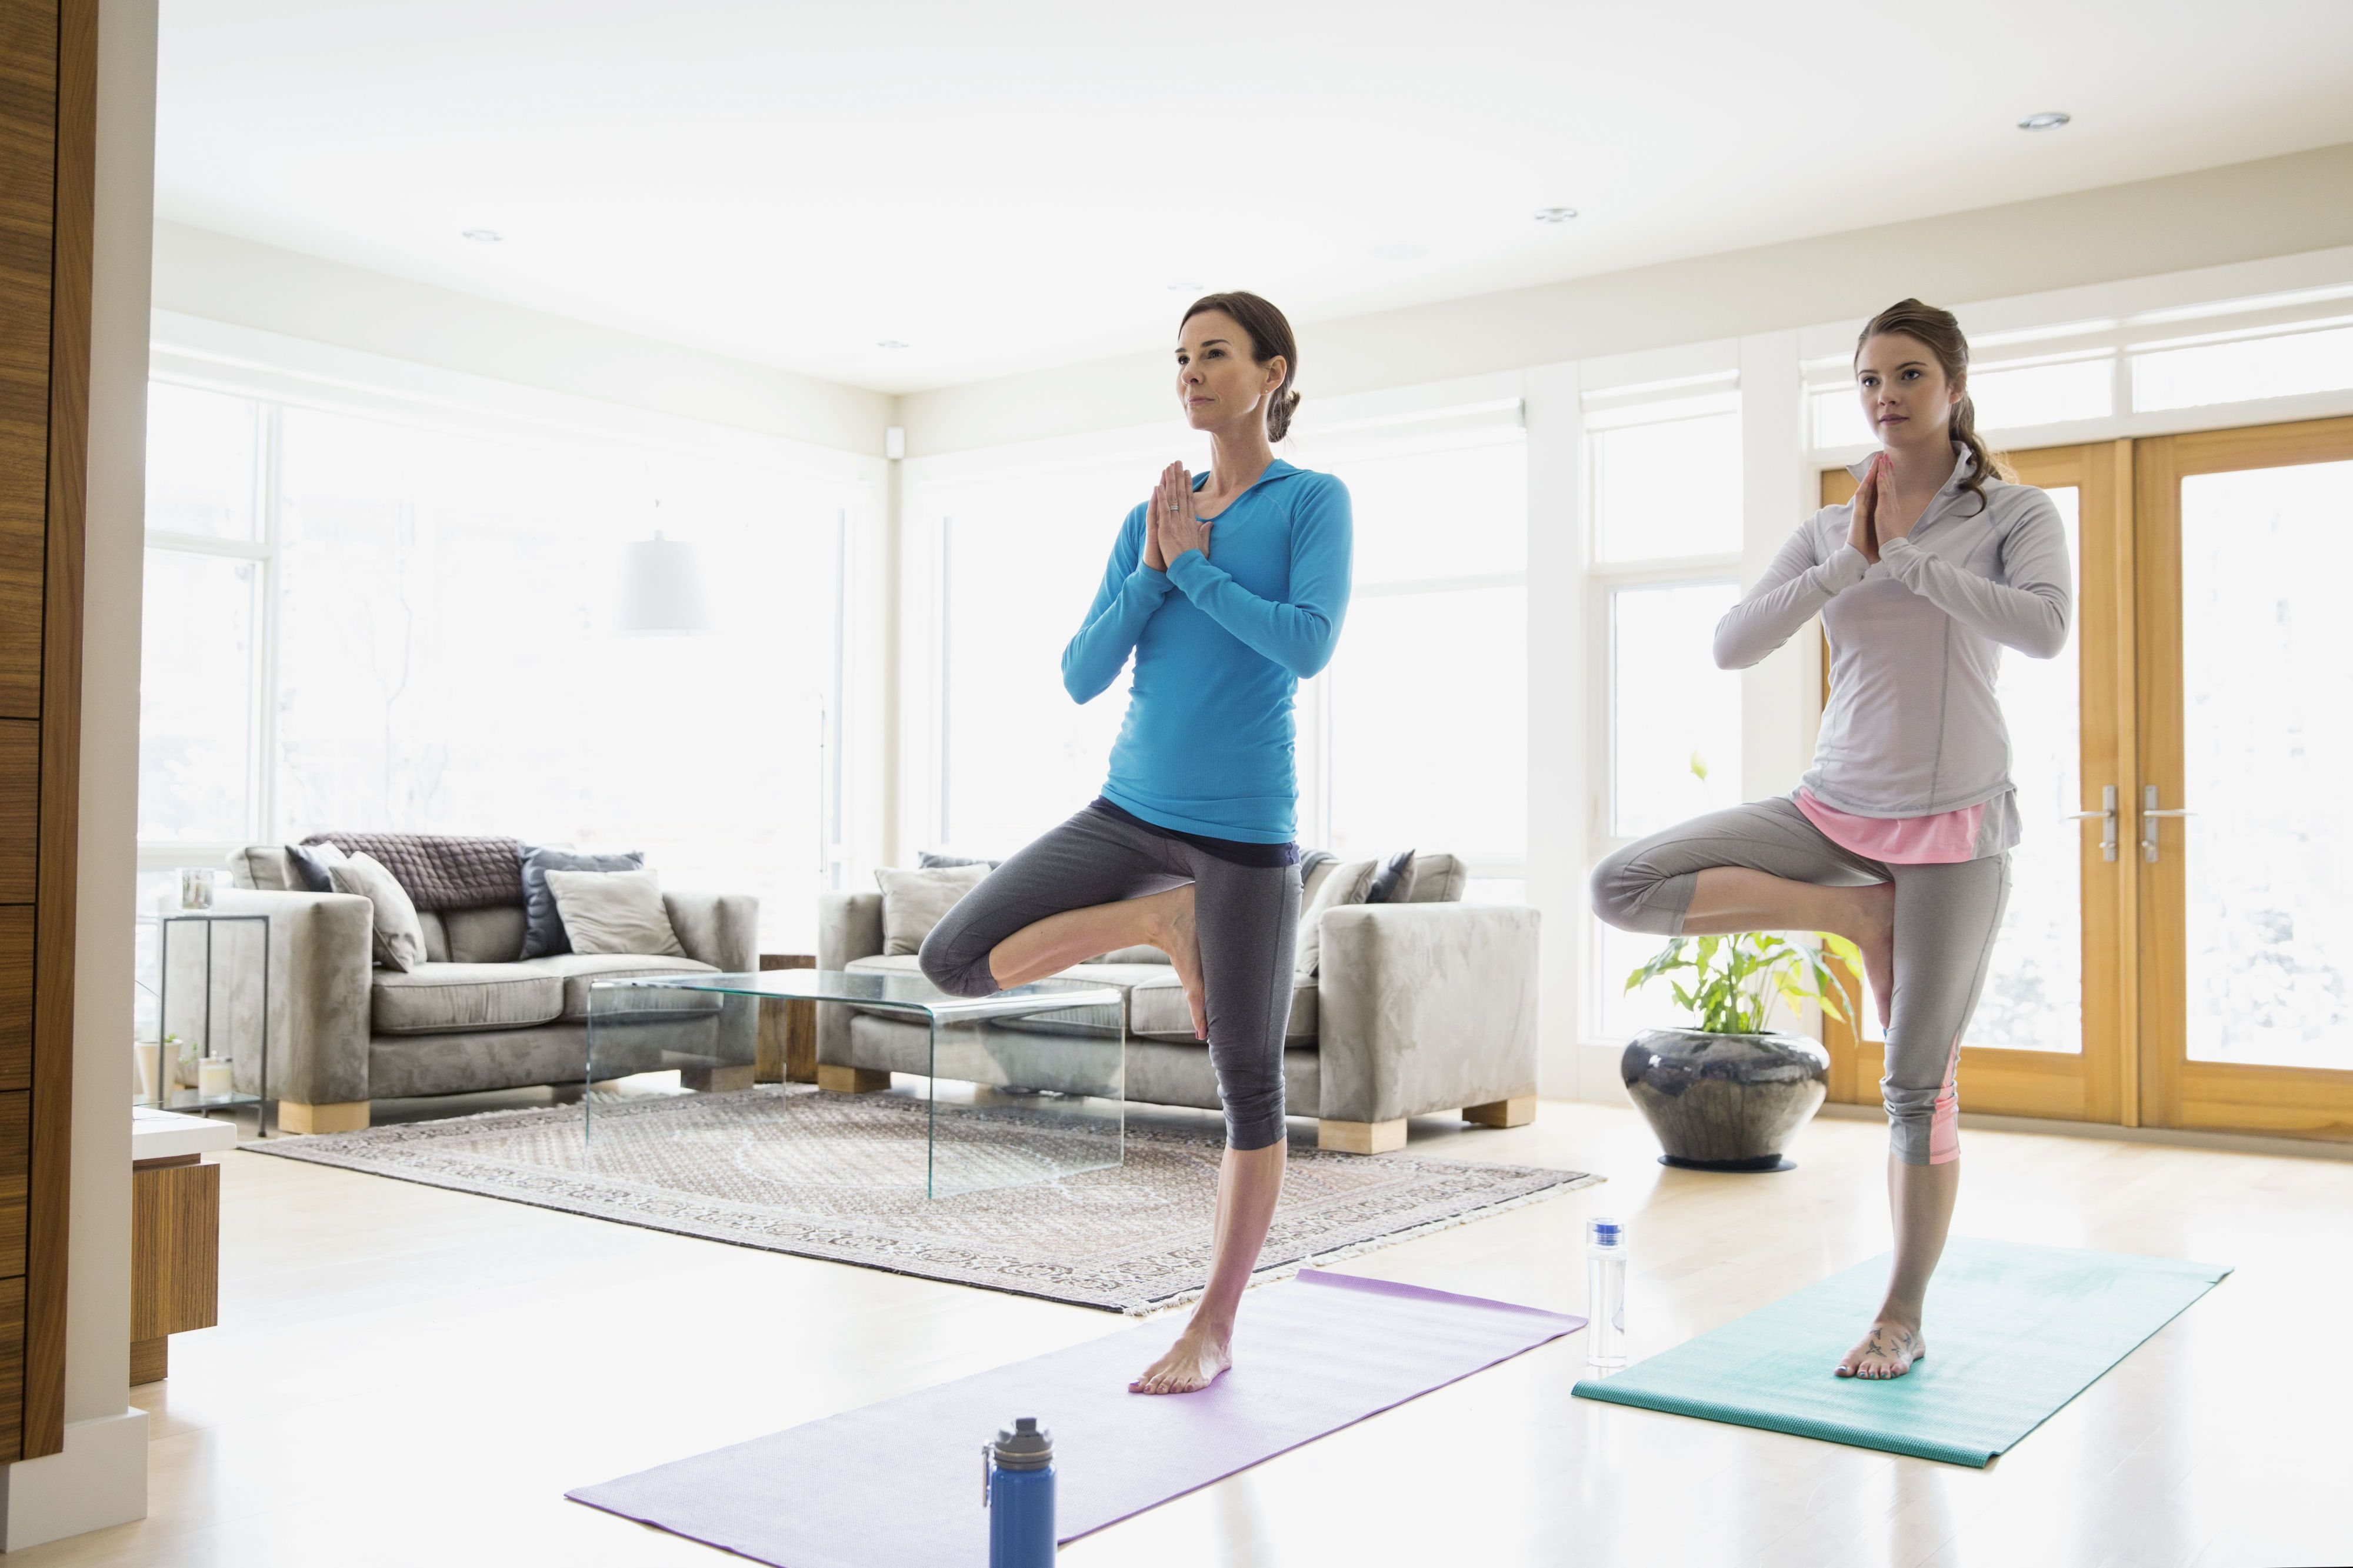 fitness room decor designing a peaceful exercise space rh elledecor com Most Peaceful Picture Ever peaceful home images